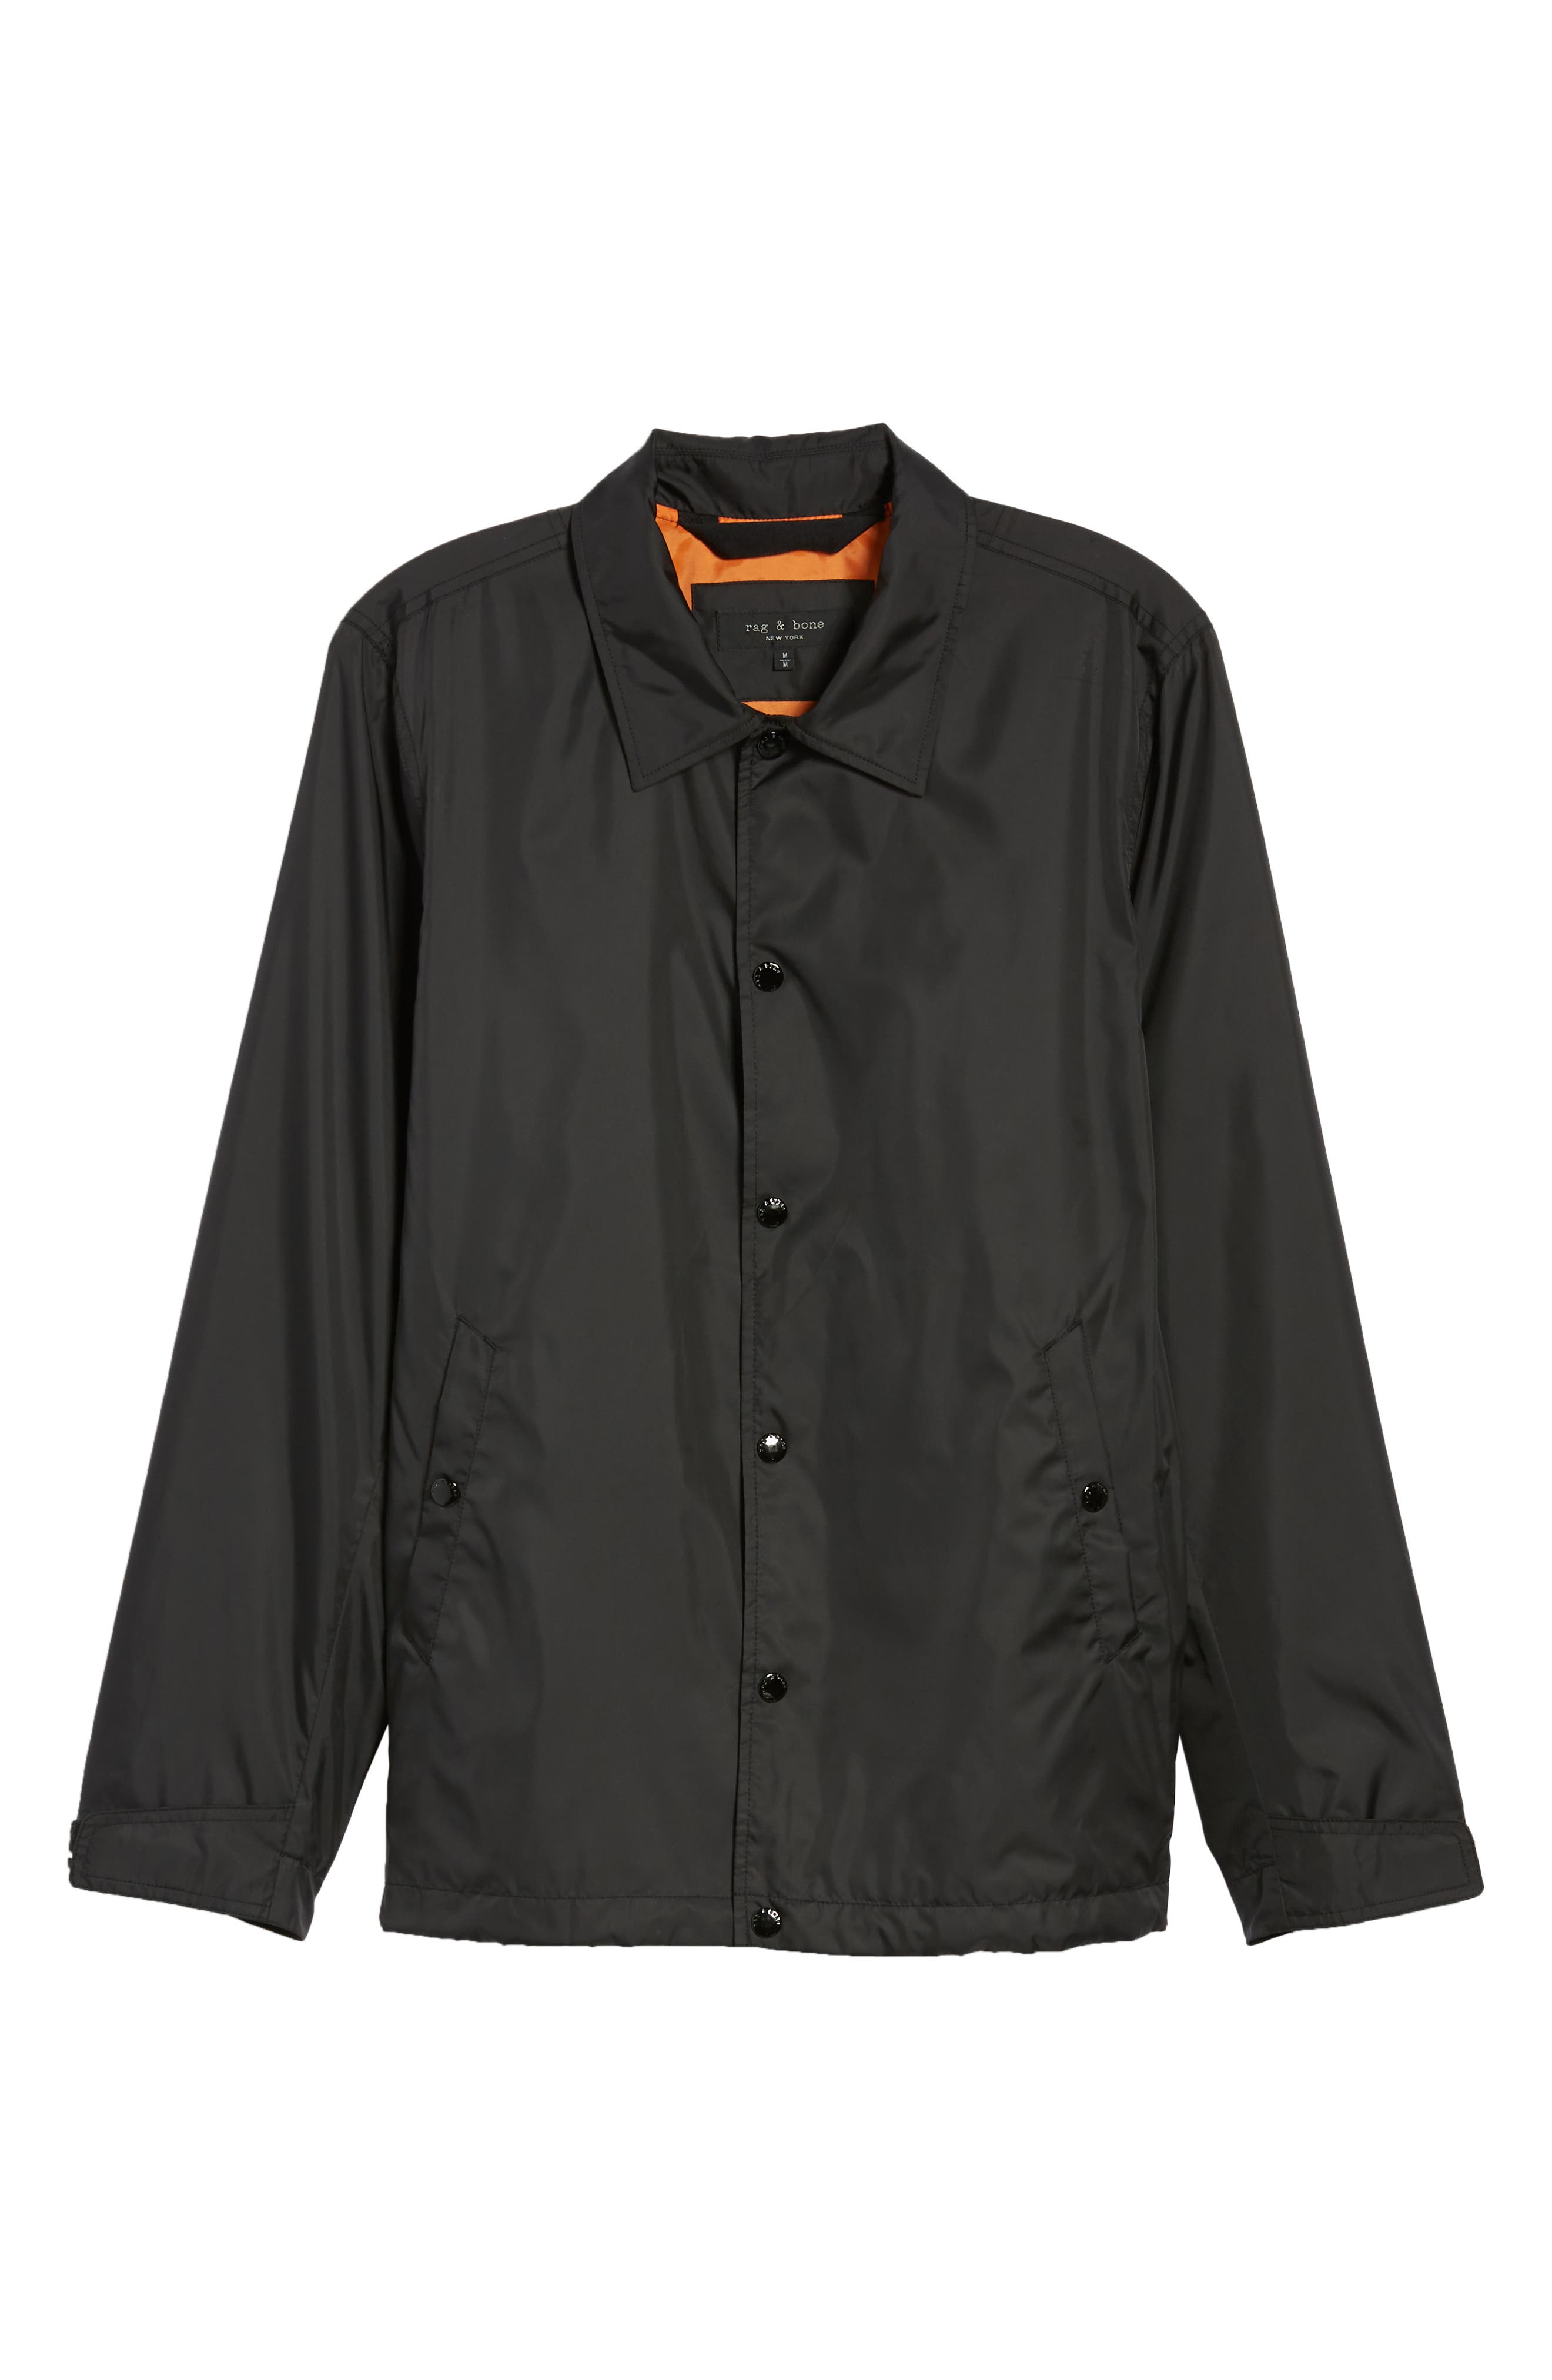 RAG & BONE,                             Coaches Jacket,                             Alternate thumbnail 5, color,                             001